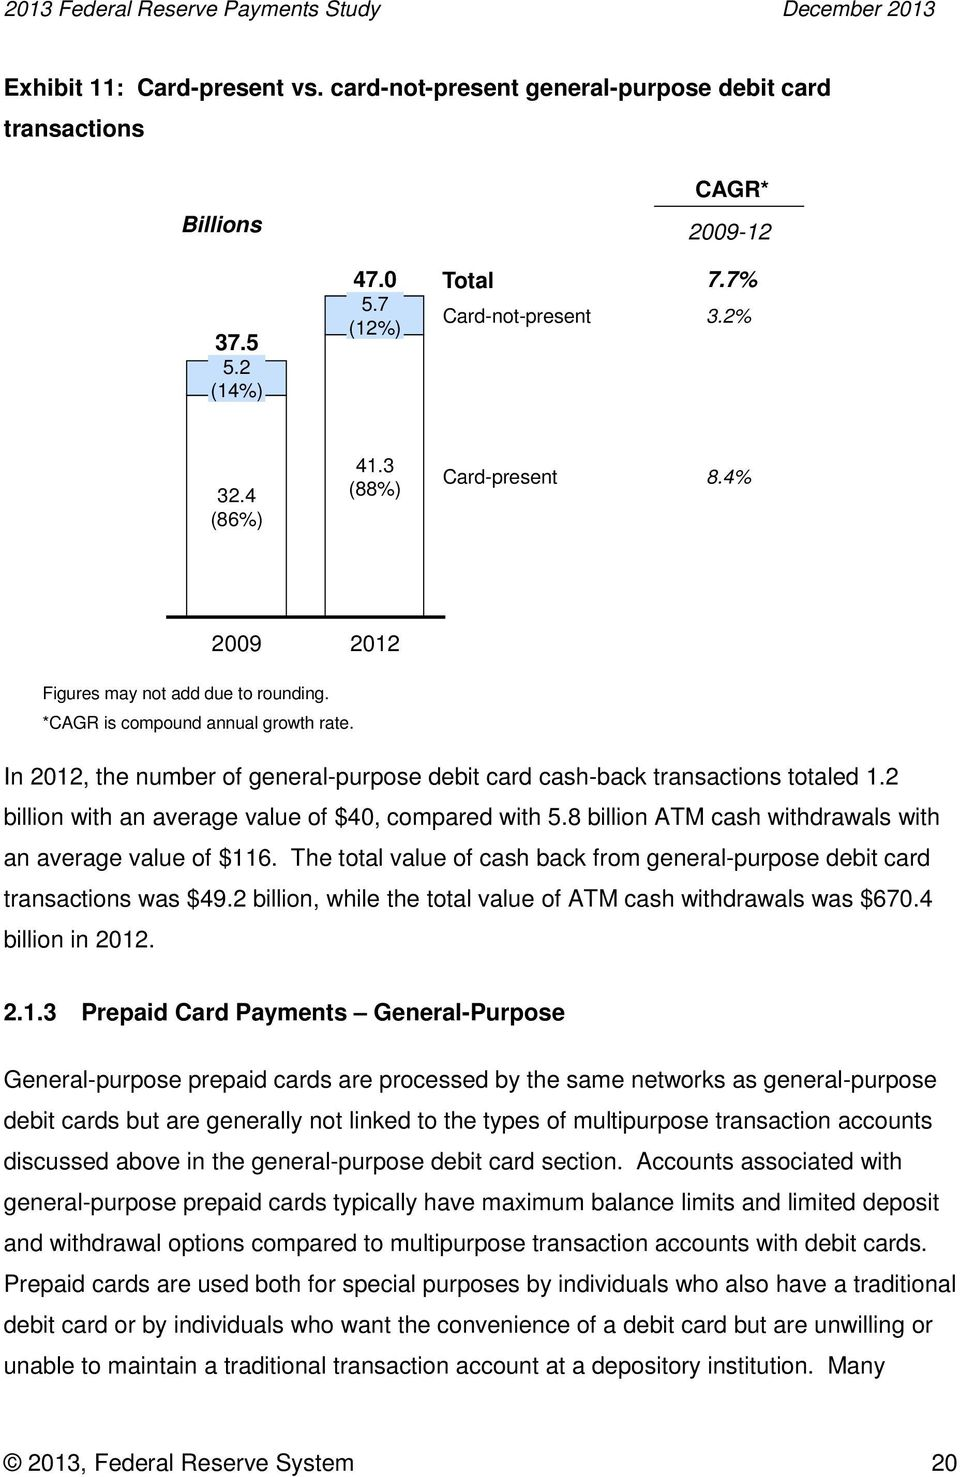 2 billion with an average value of $40, compared with 5.8 billion ATM cash withdrawals with an average value of $116. The total value of cash back from general-purpose debit card transactions was $49.